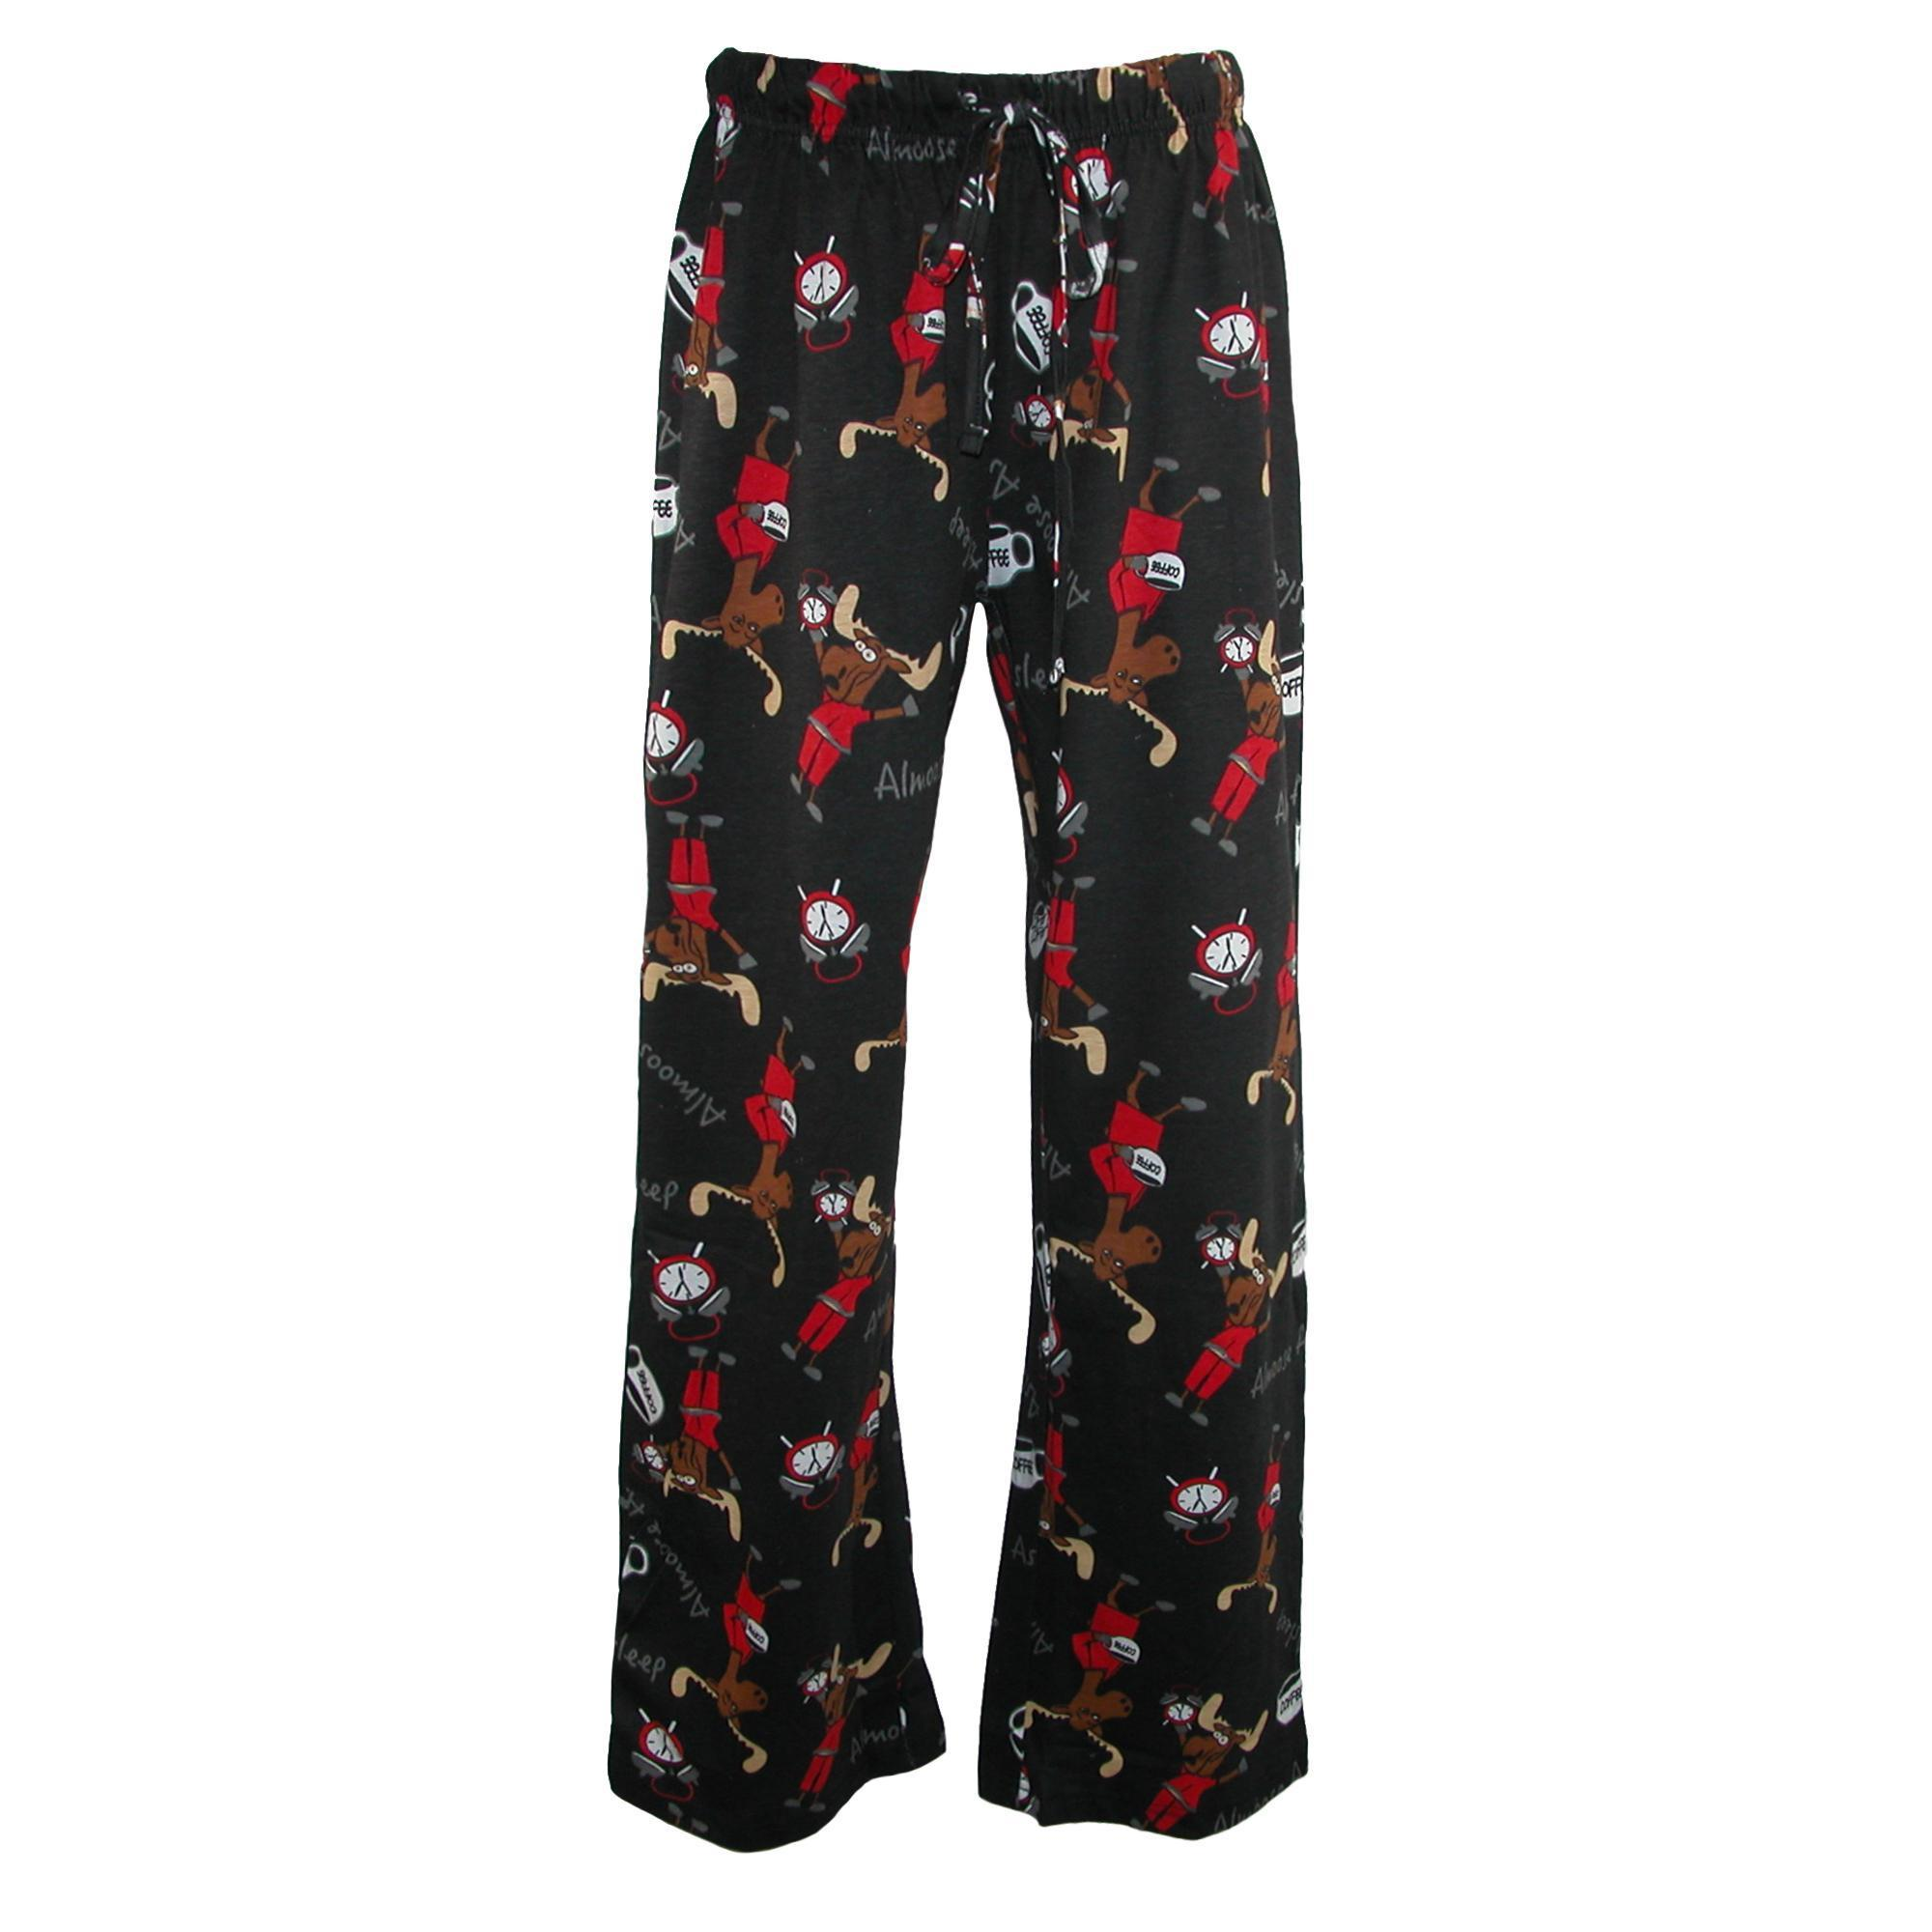 Just_One_Women's_Plus_Size_Knit_Novelty_Print_Pajama_Pants_-